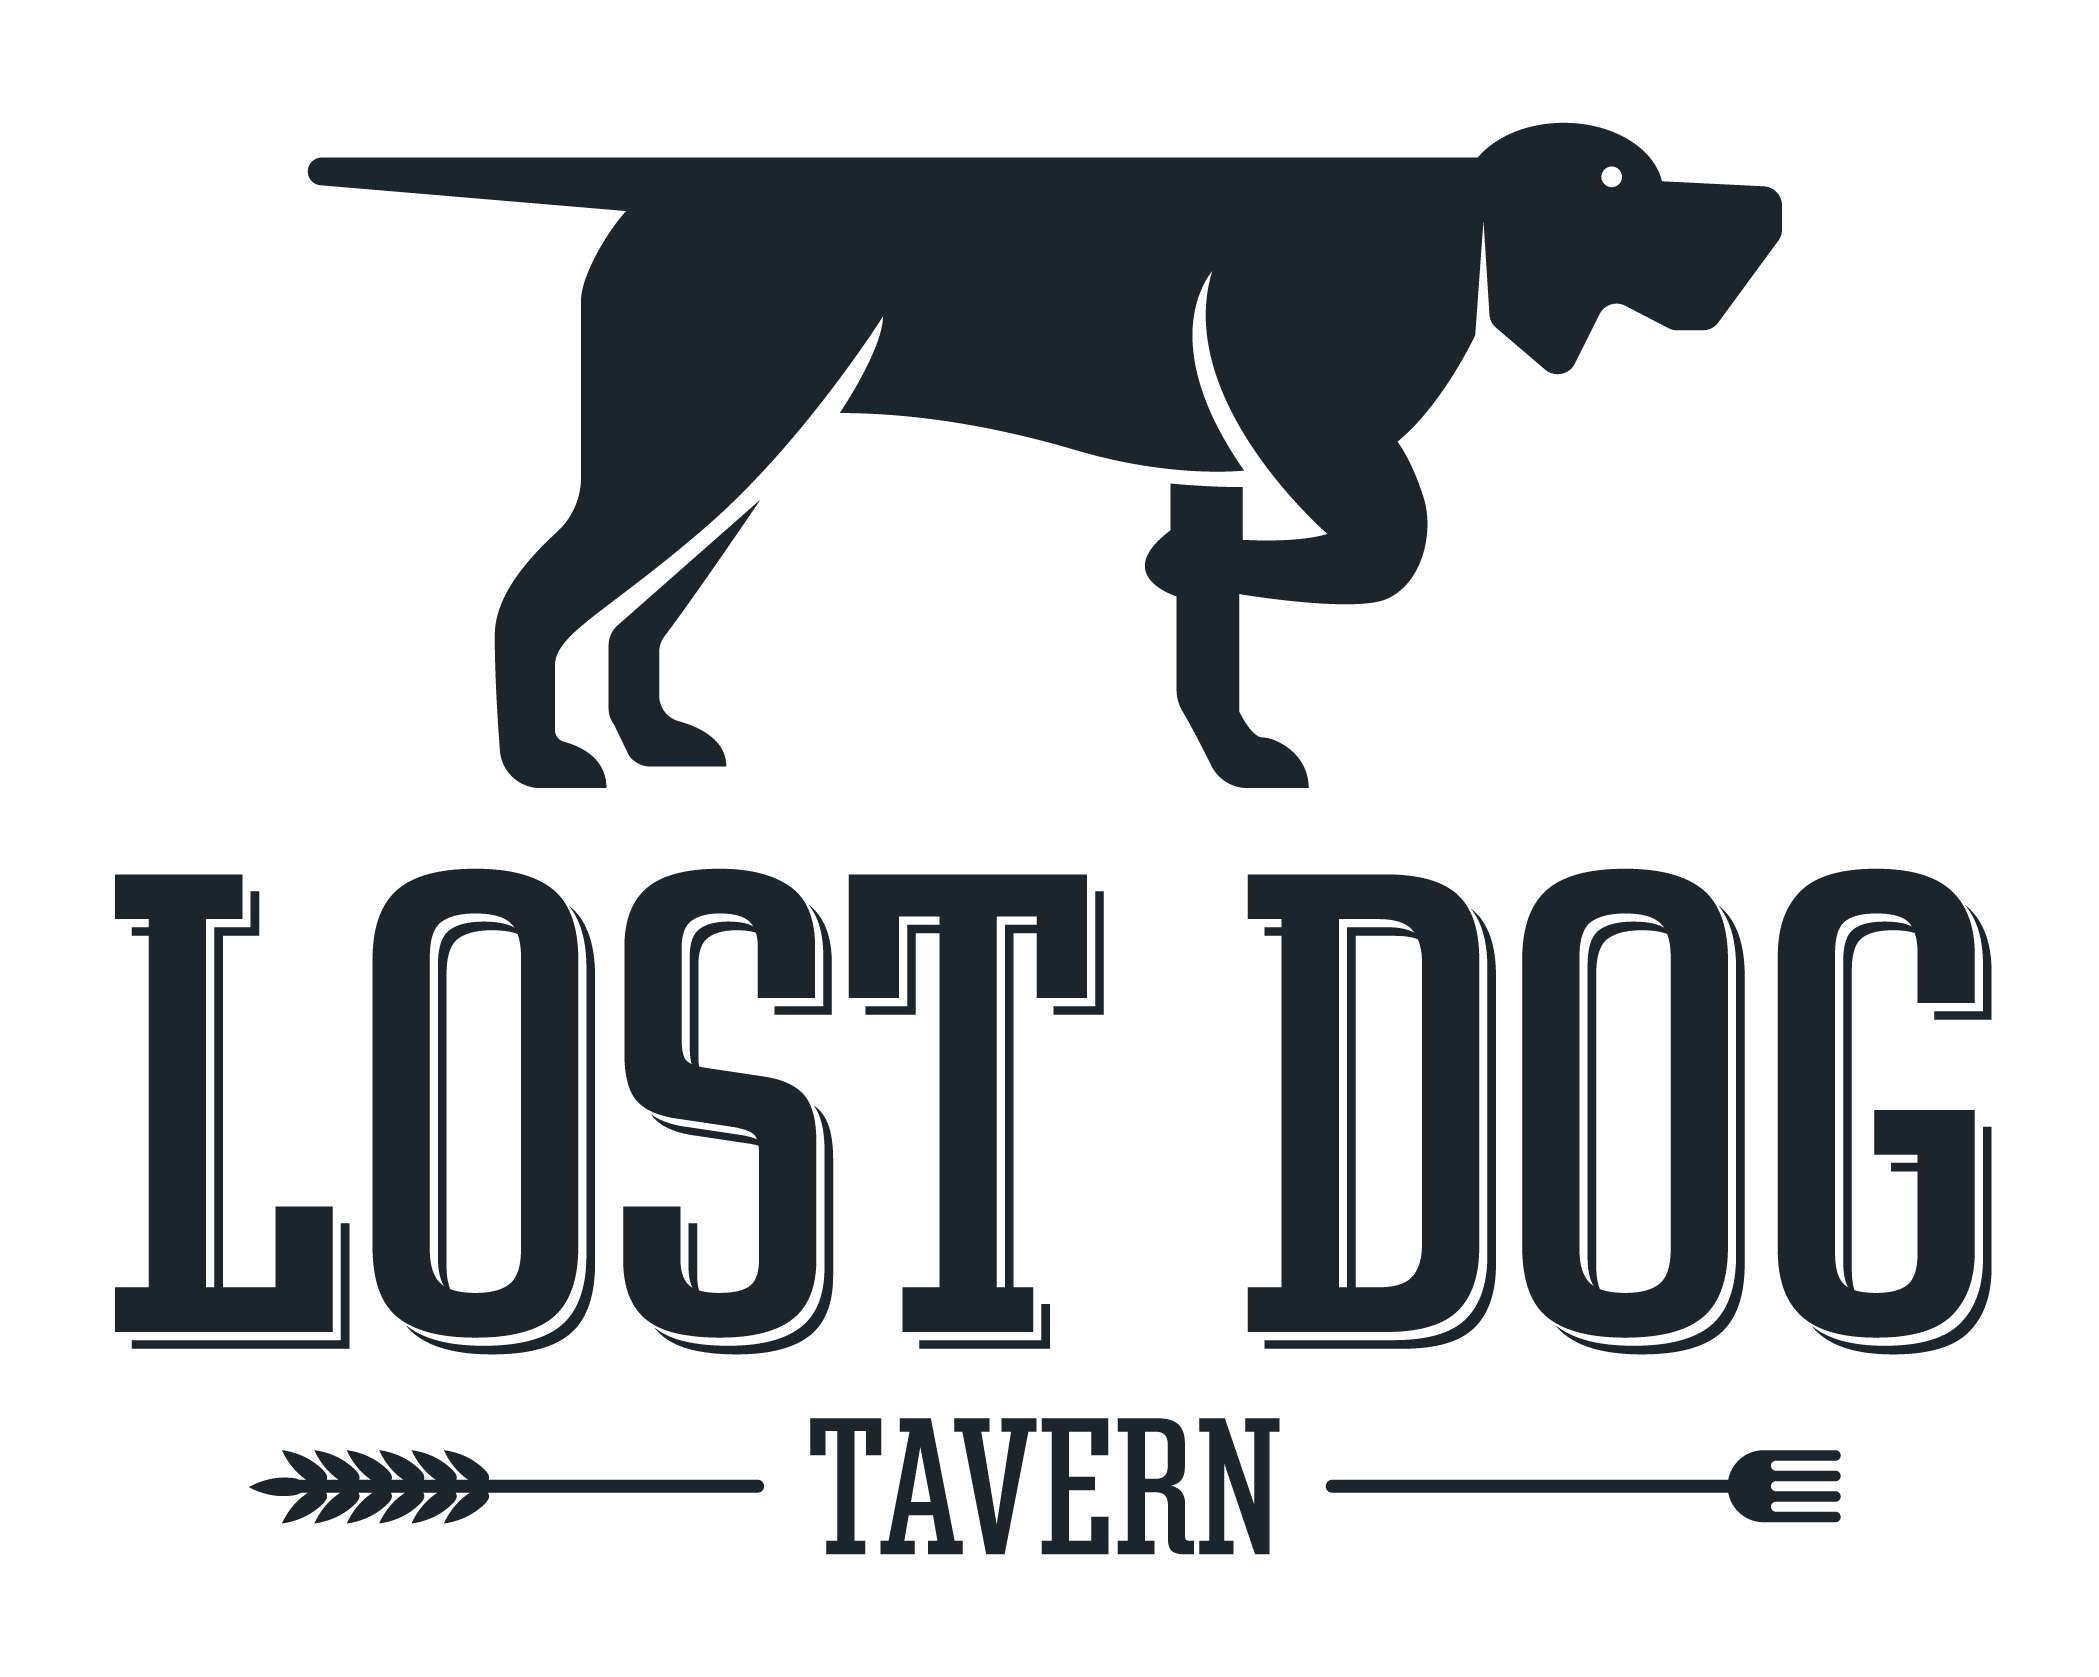 Lost Dog Tavern